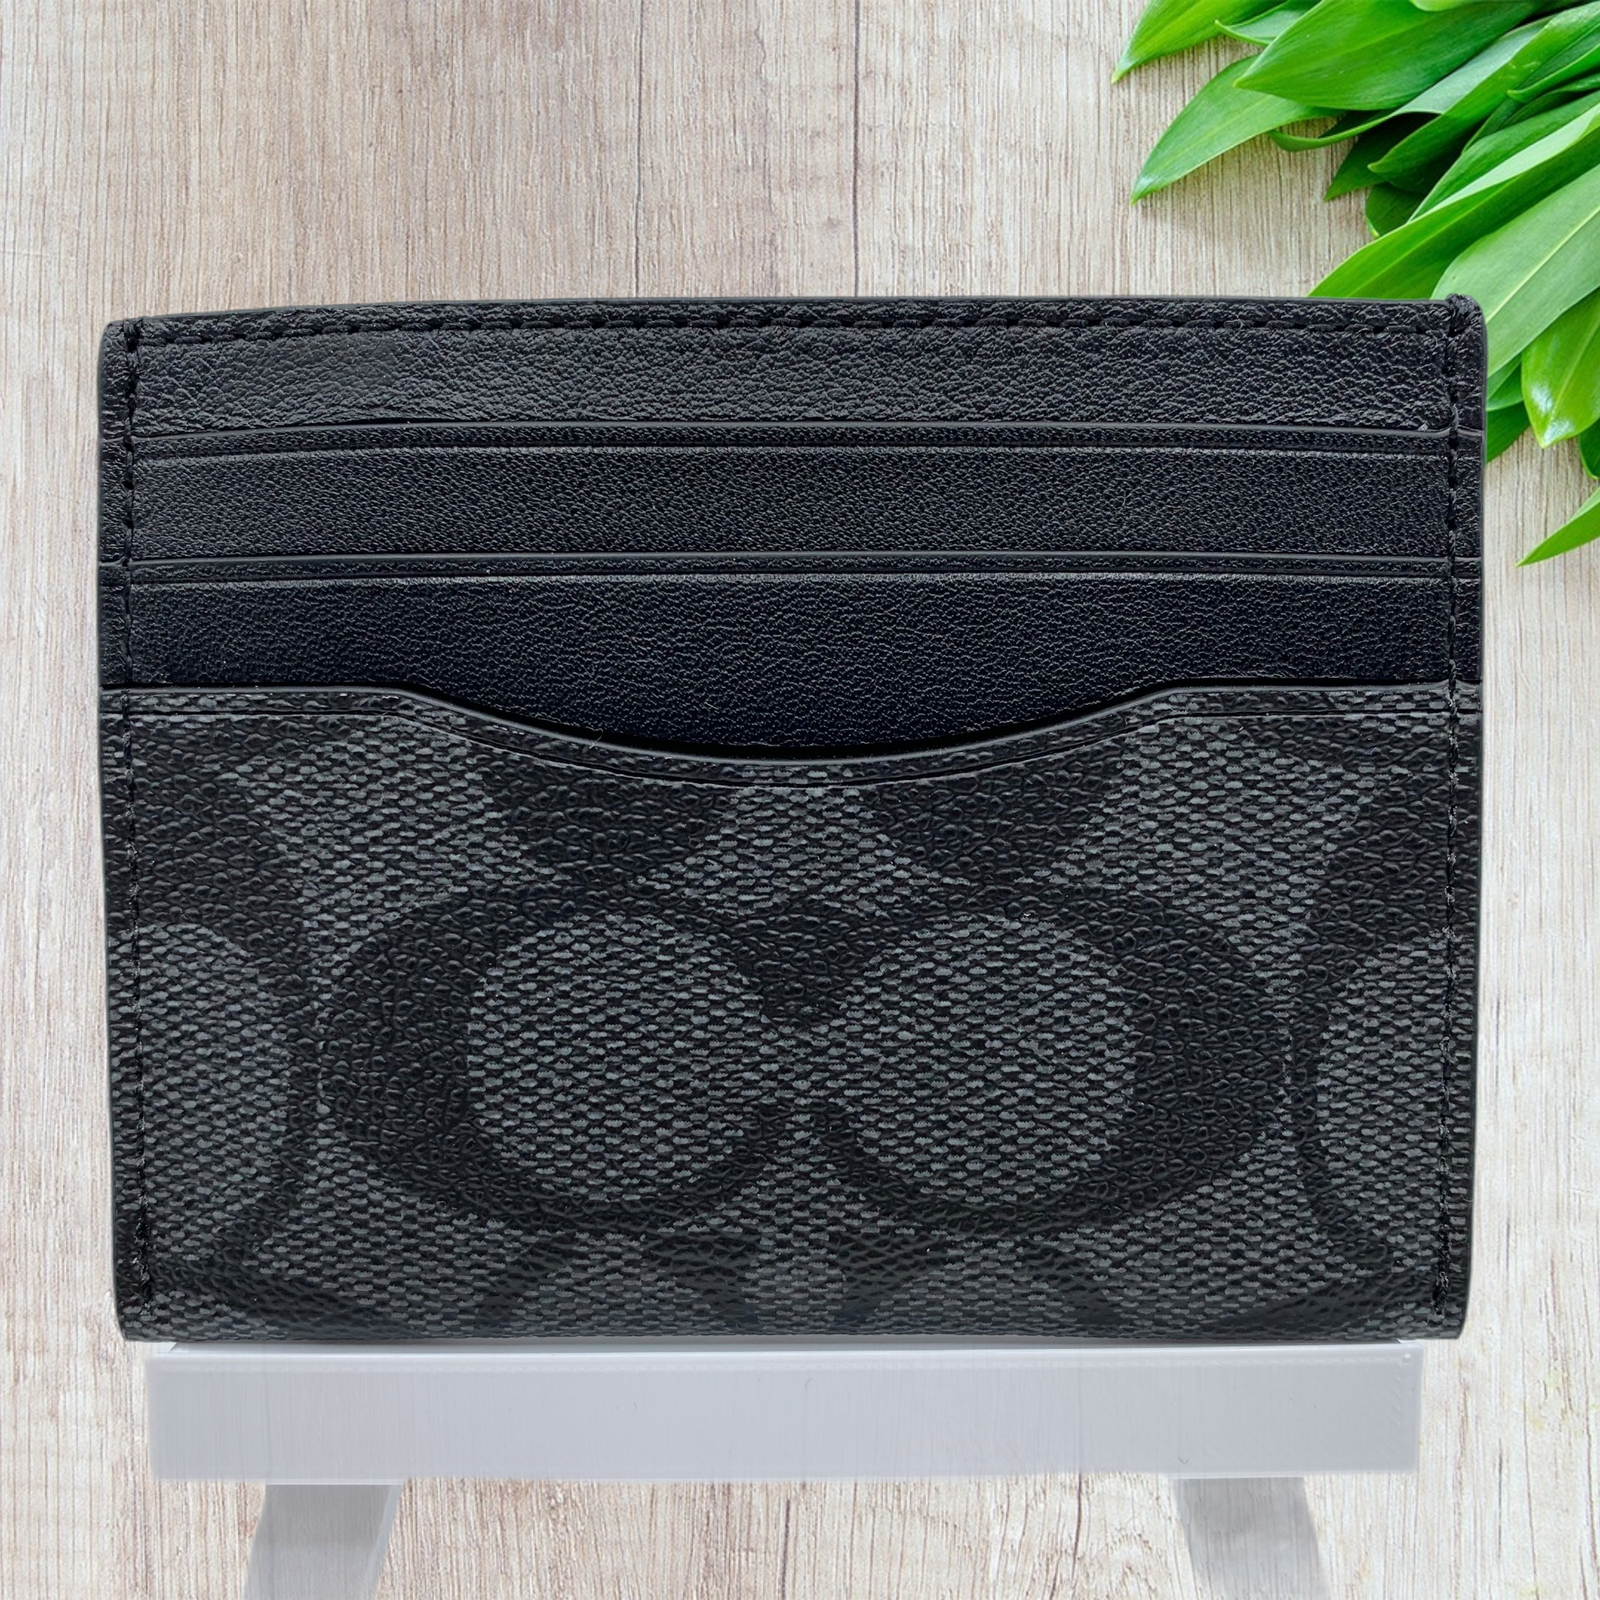 Product Image 1 - Coach Slim ID Card Case